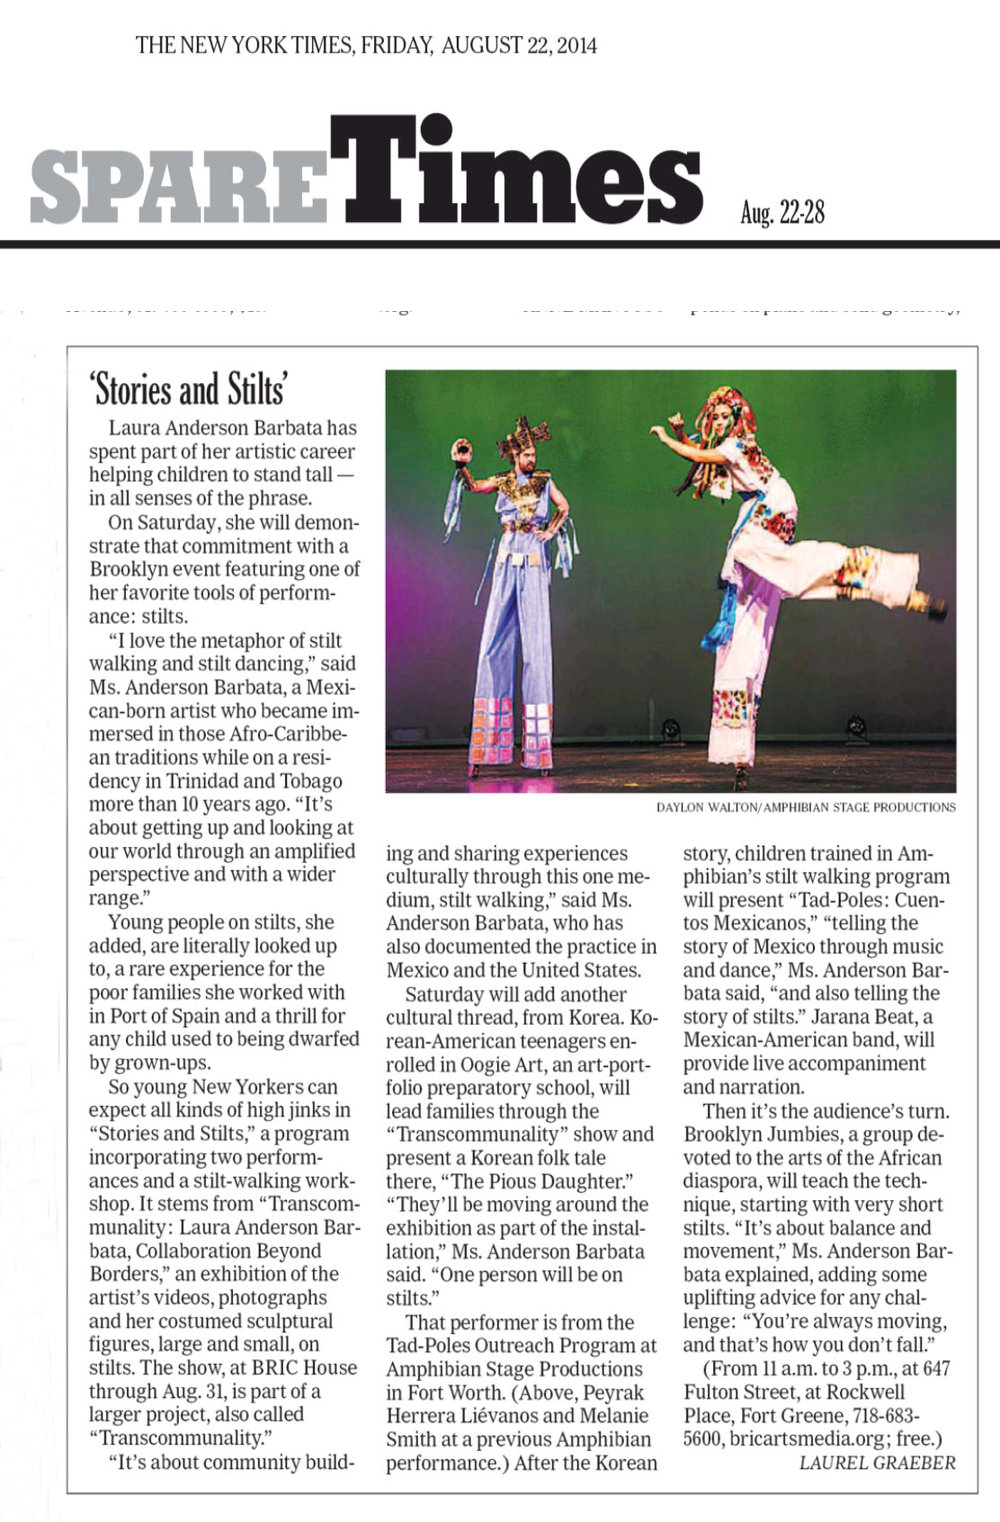 NY Times 2014 stilts and stories.jpg